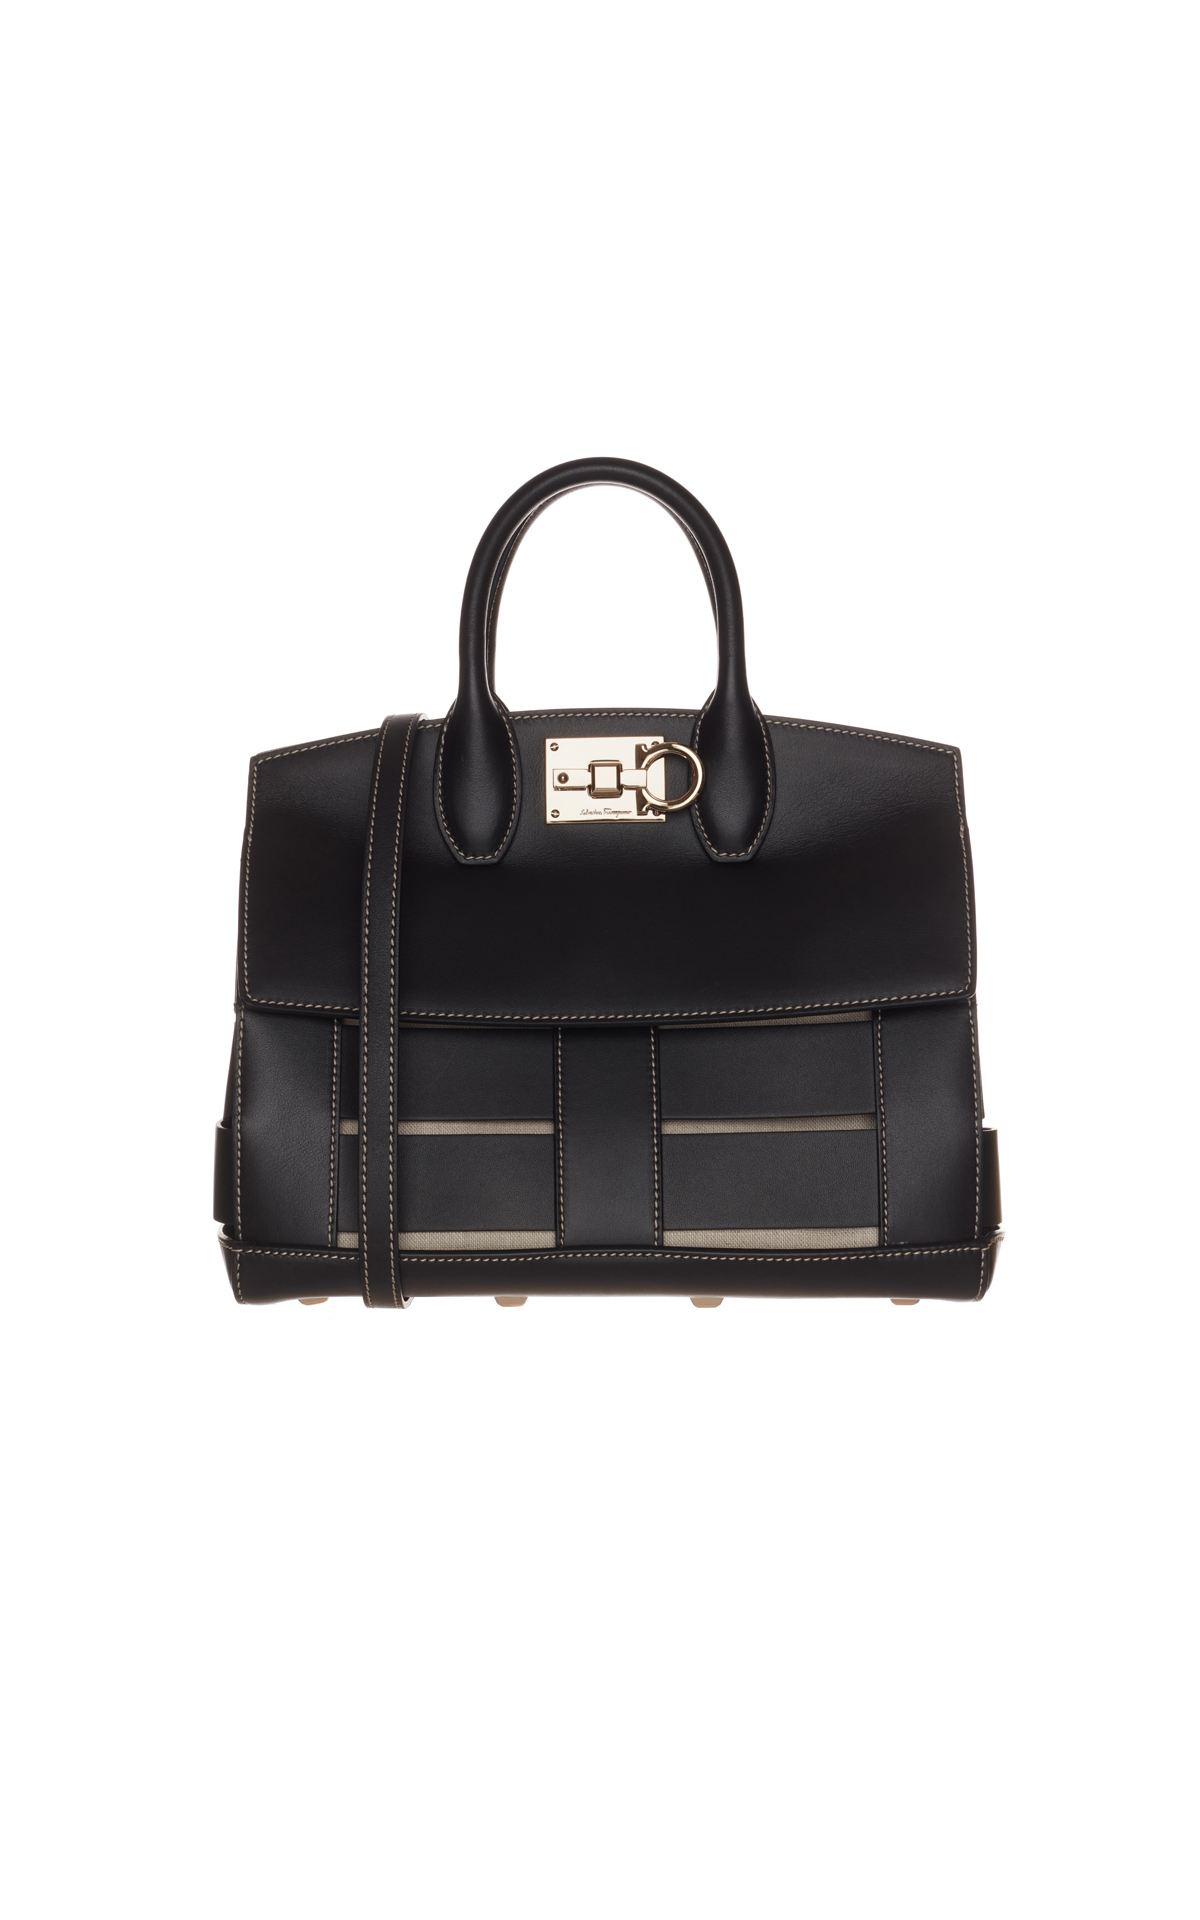 Salvatore Ferragamo Black top handle bag from Bicester Village